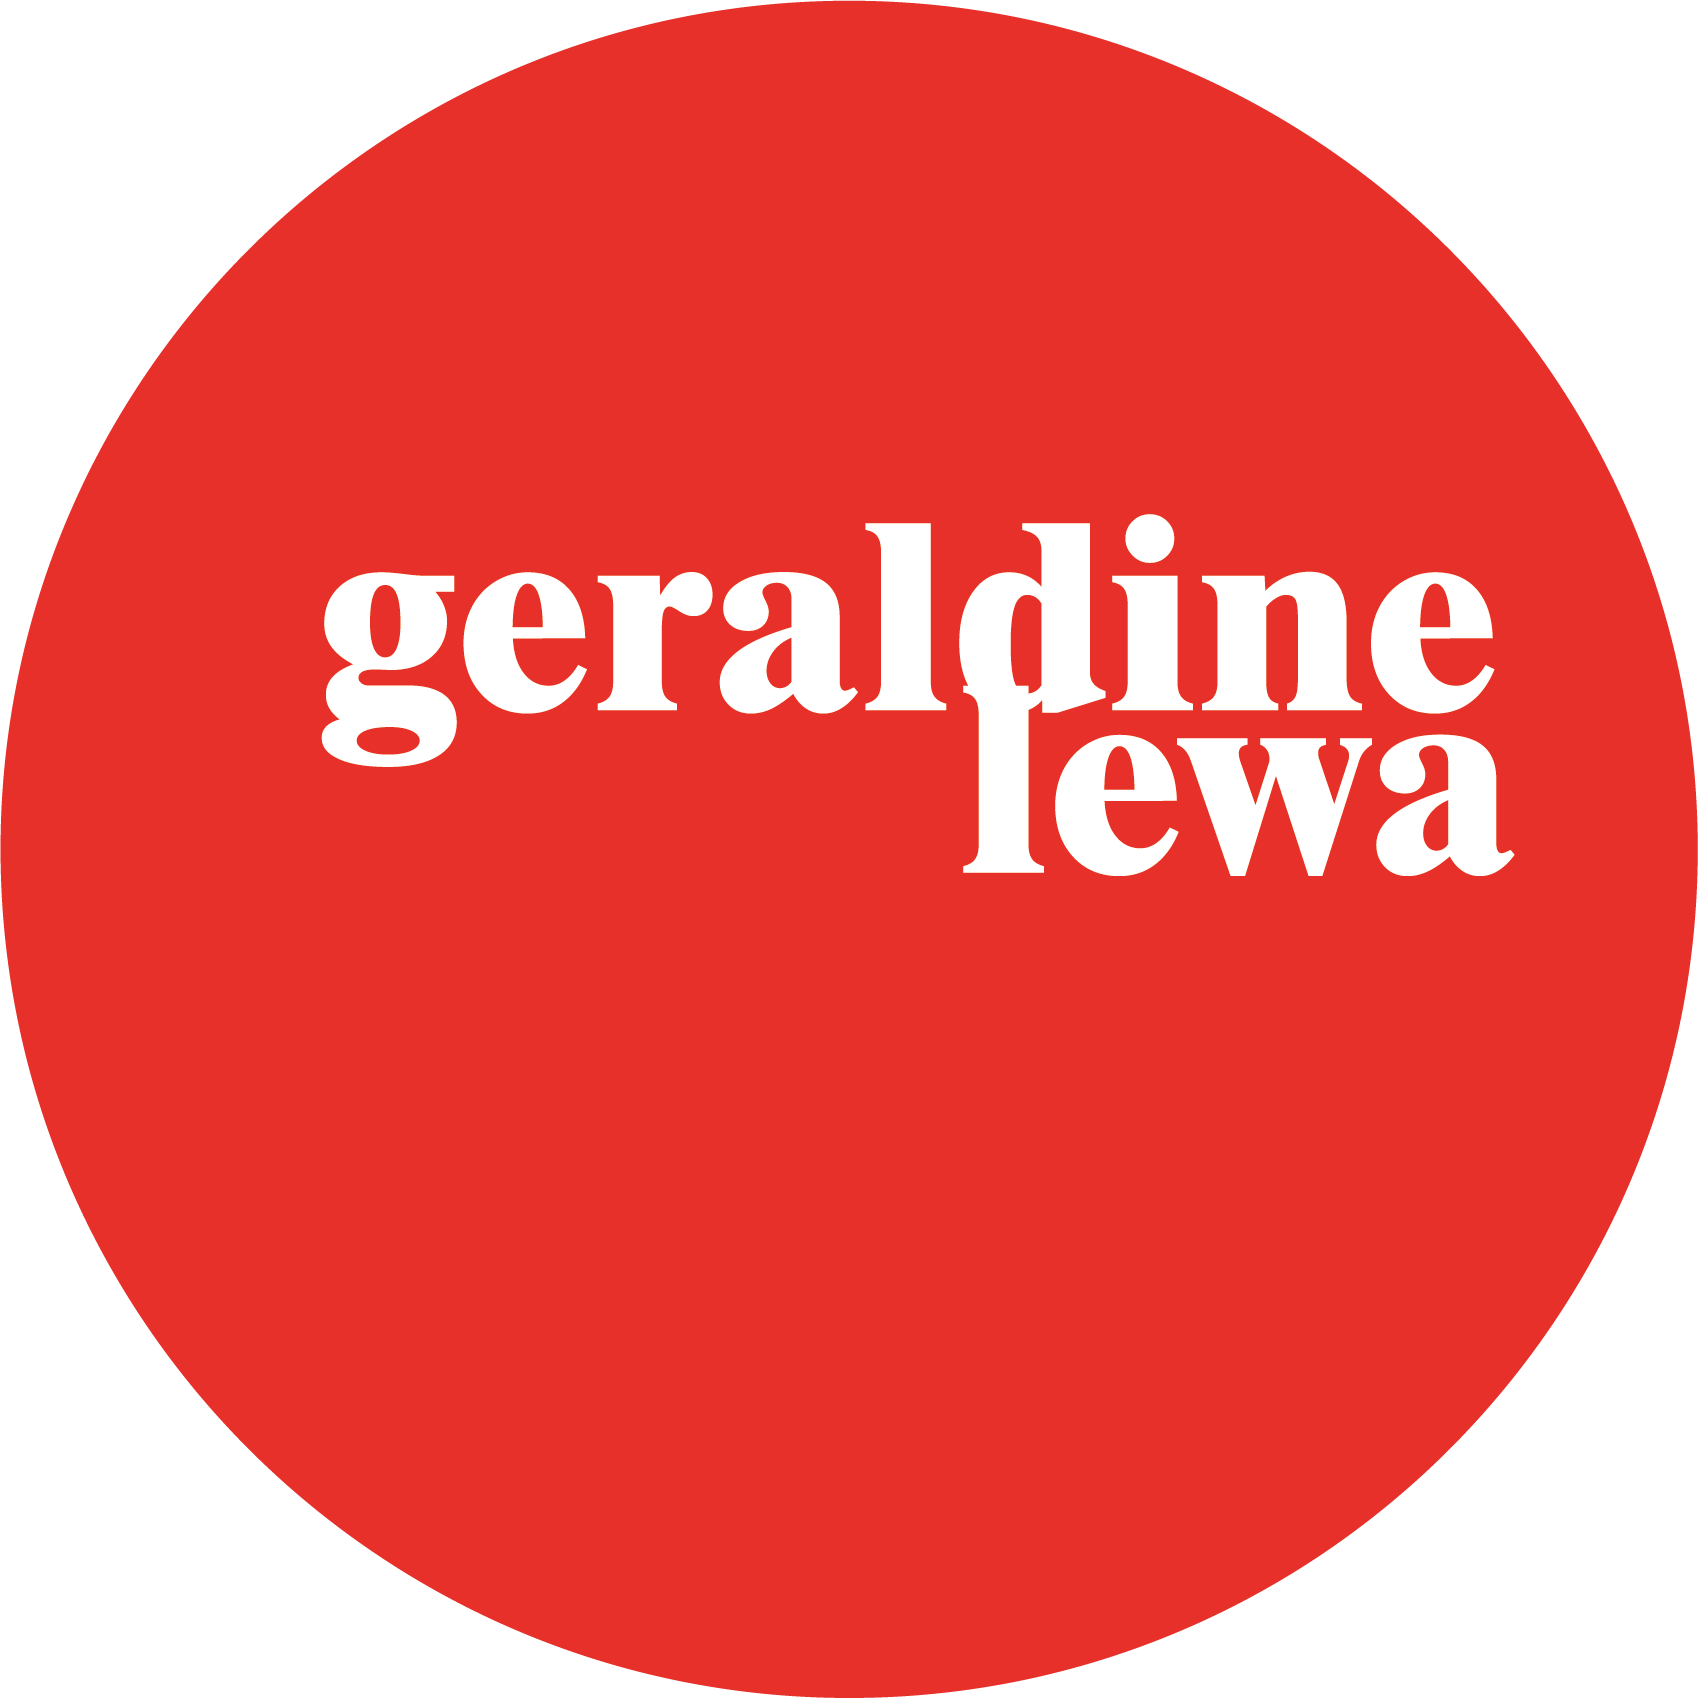 Go to Geraldine Lewa's profile